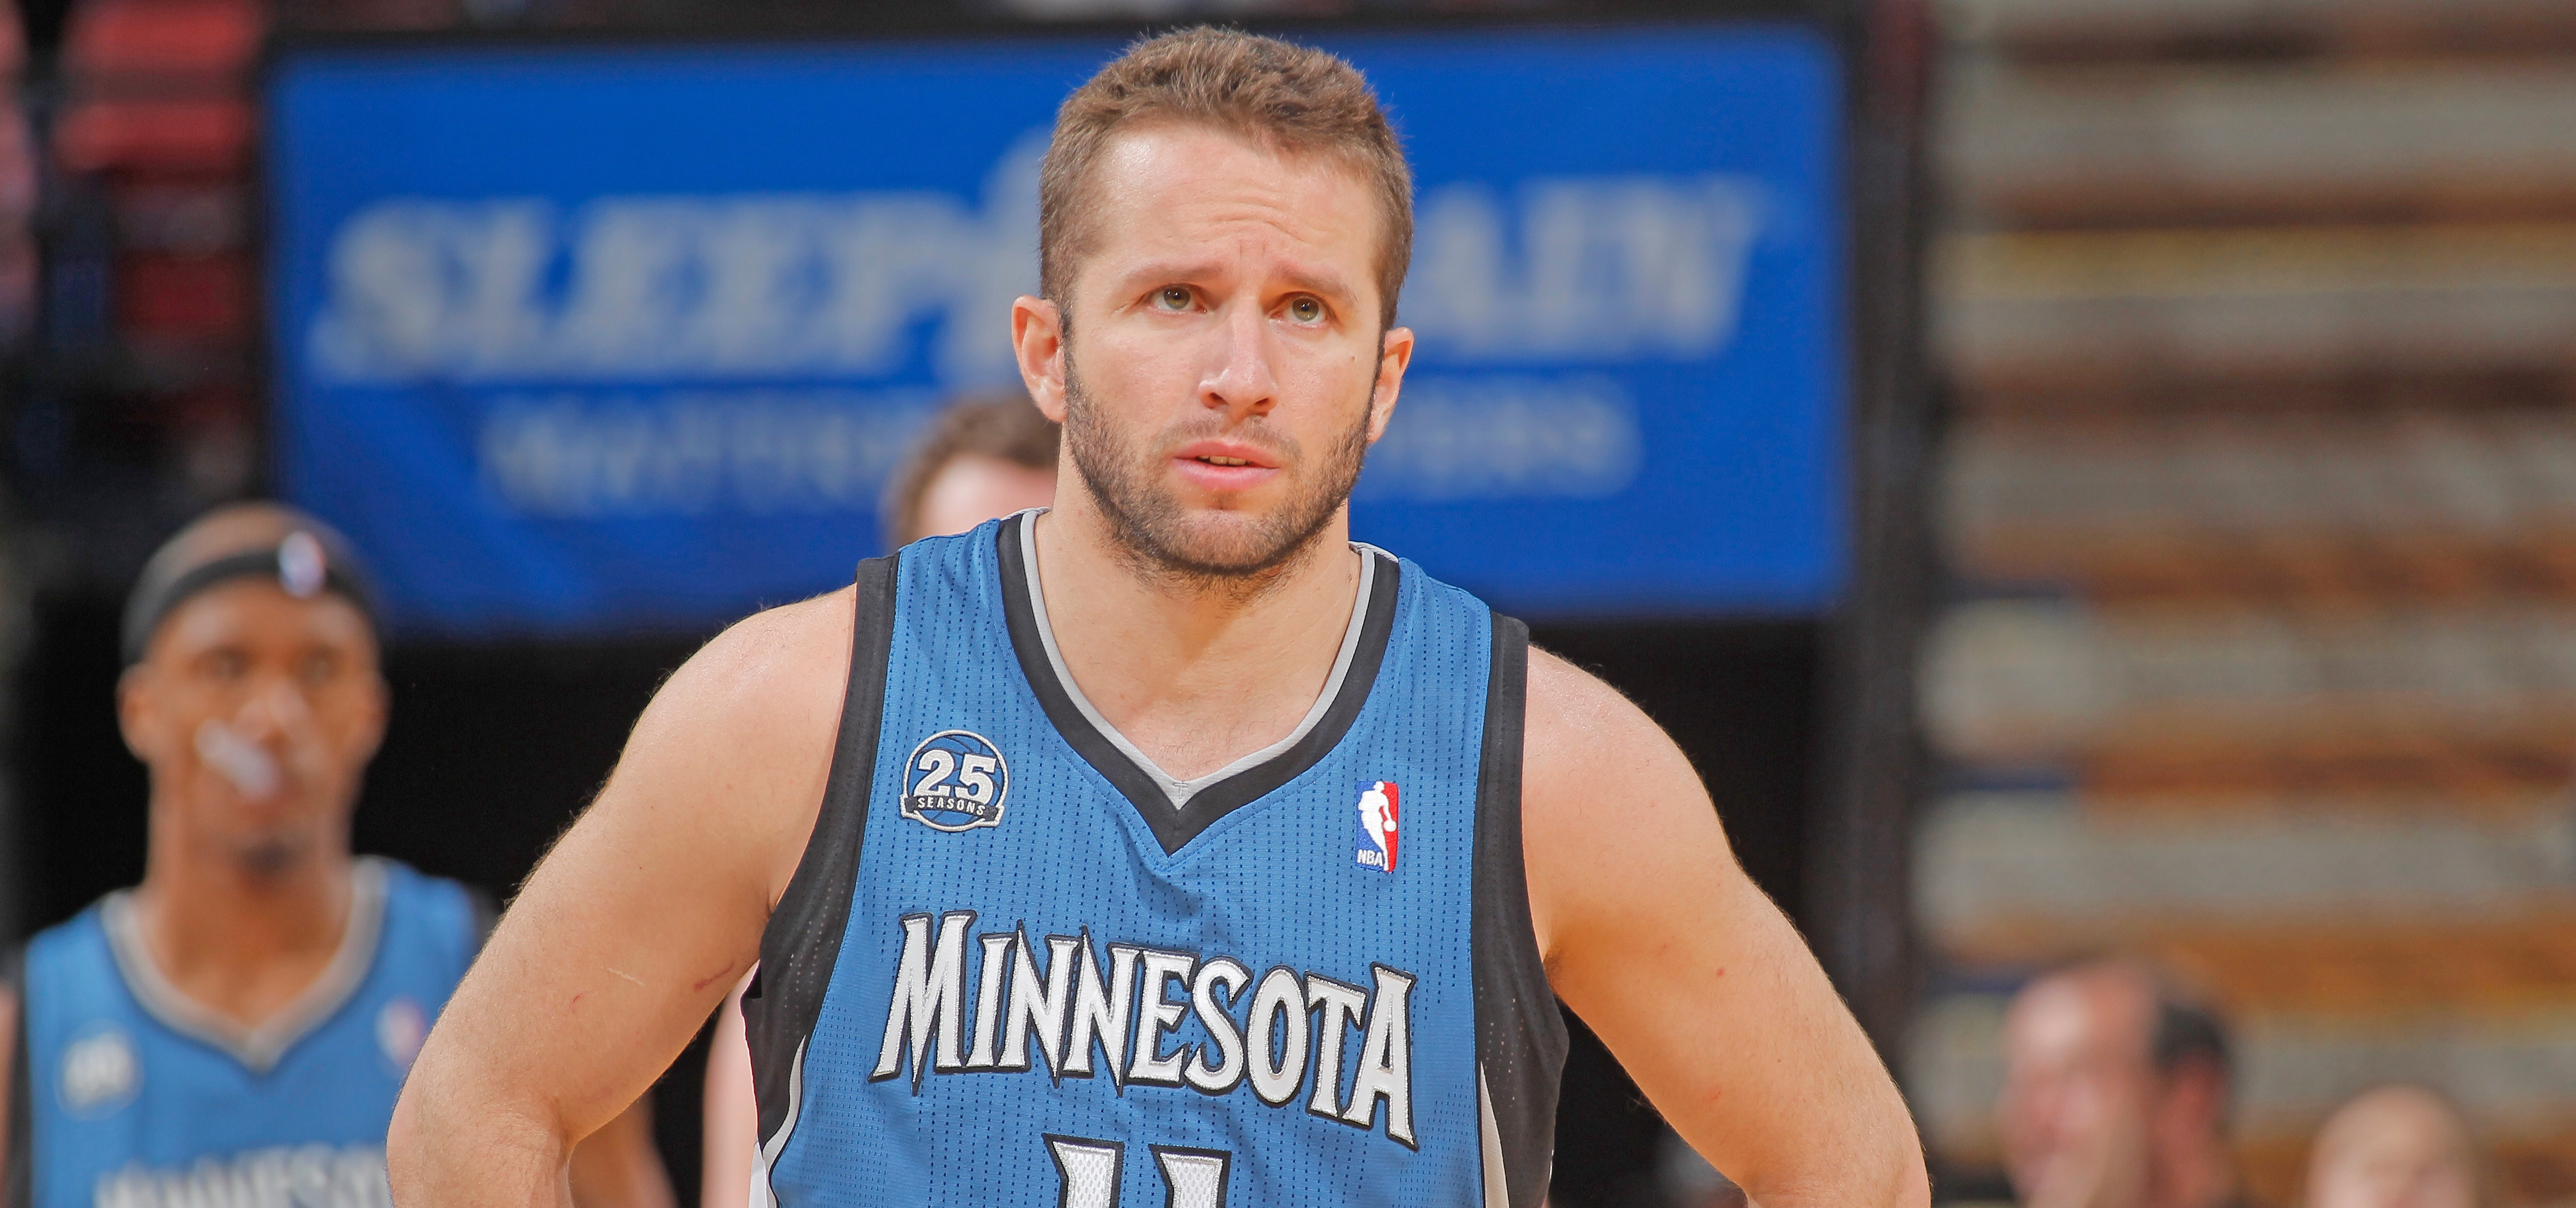 Where Are They Now? | J.J. Barea | Minnesota Timberwolves